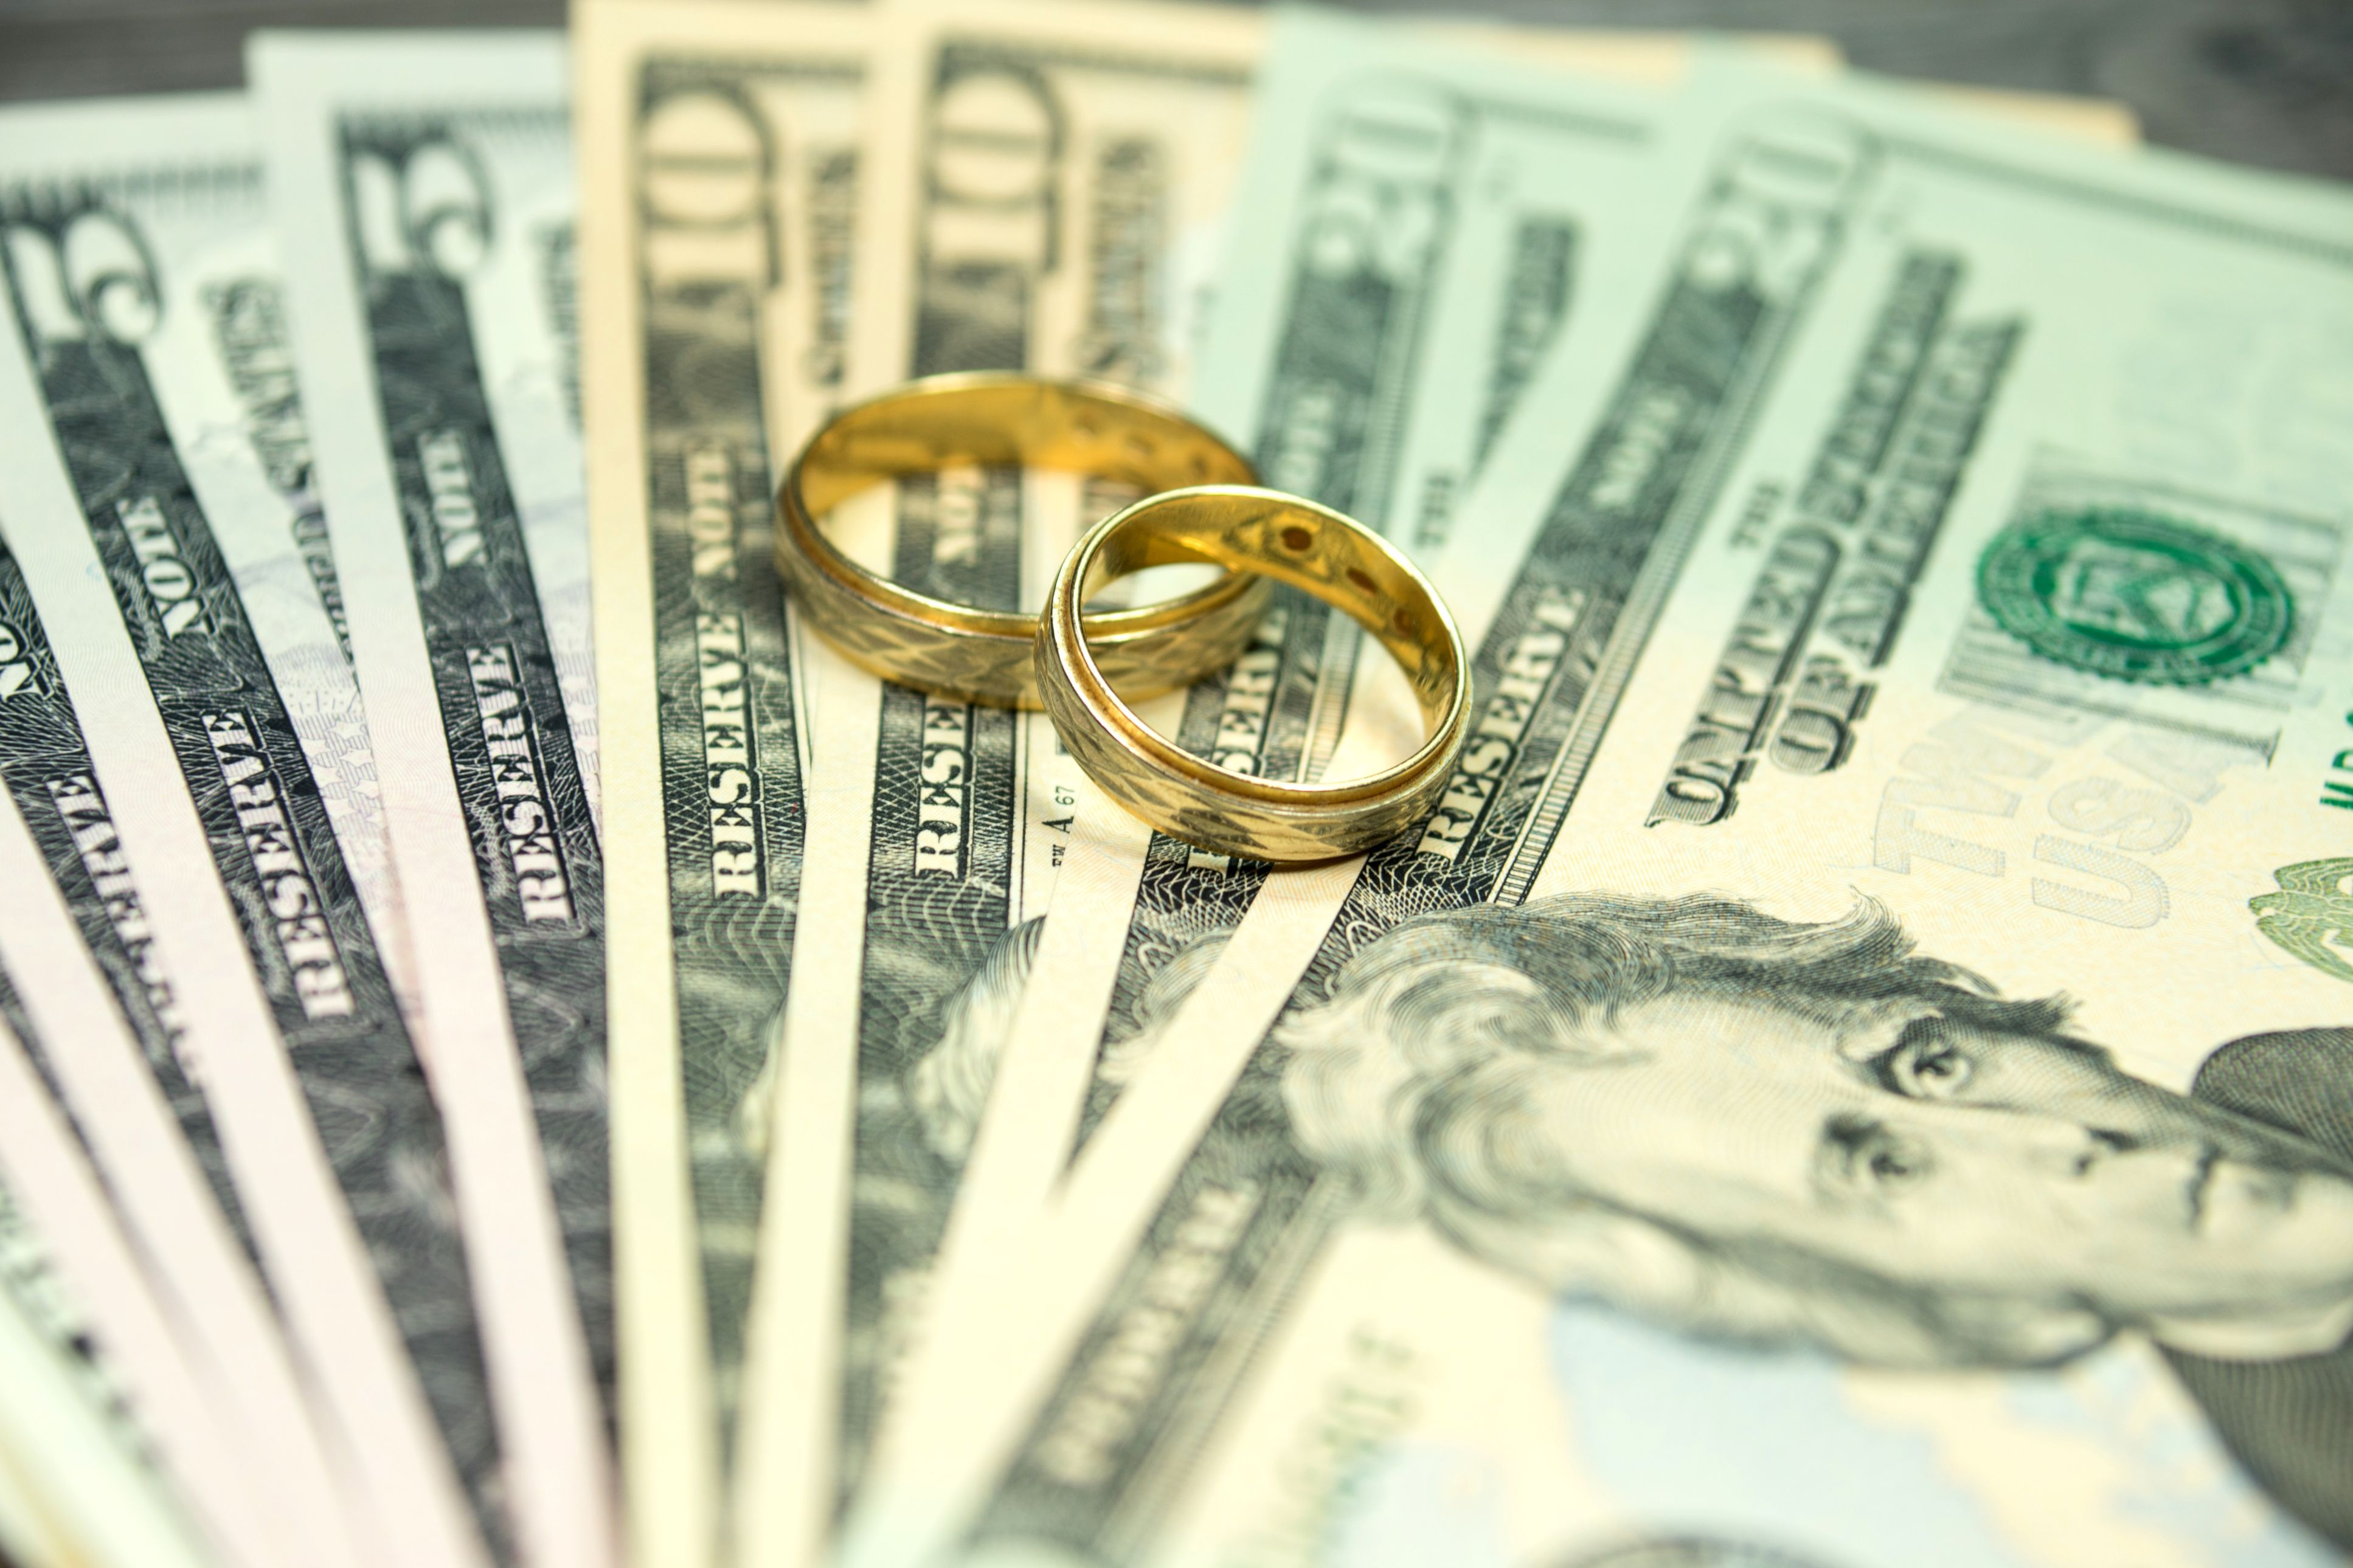 Weddings come with a big price tag. Here's how couples